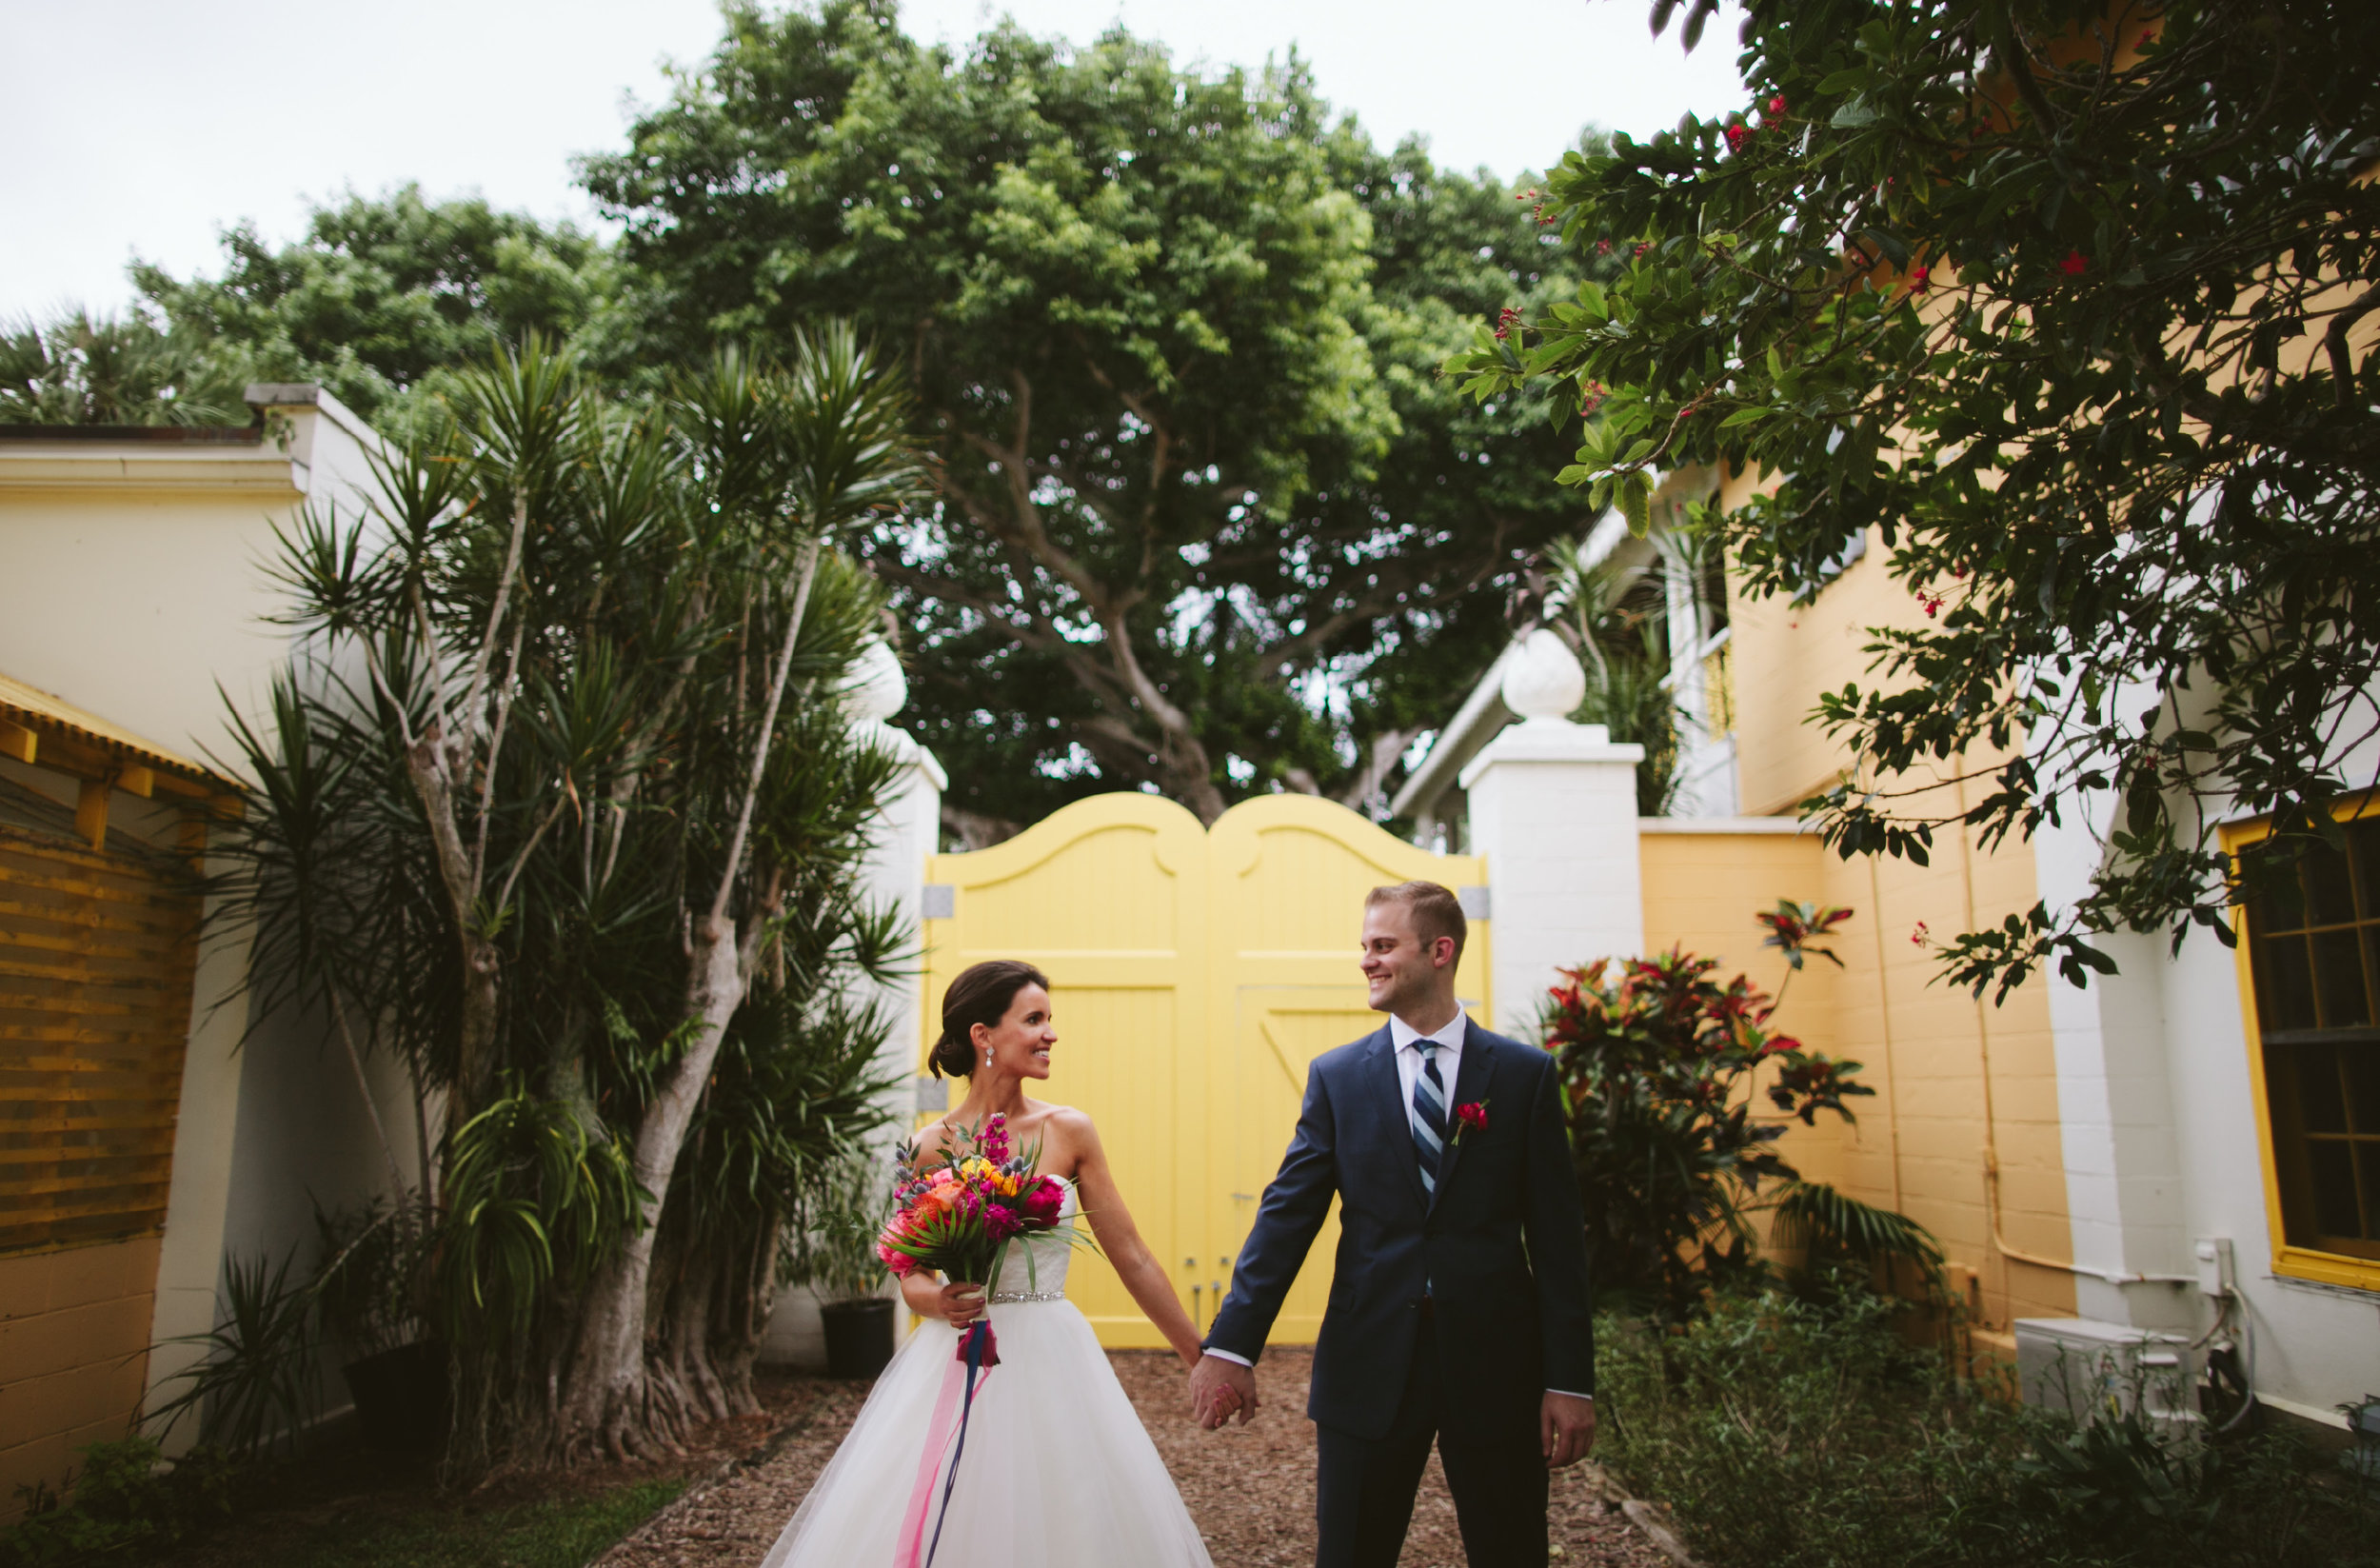 Heather + Greg's Wedding at the Bonnet House Ft Lauderdale28.jpg